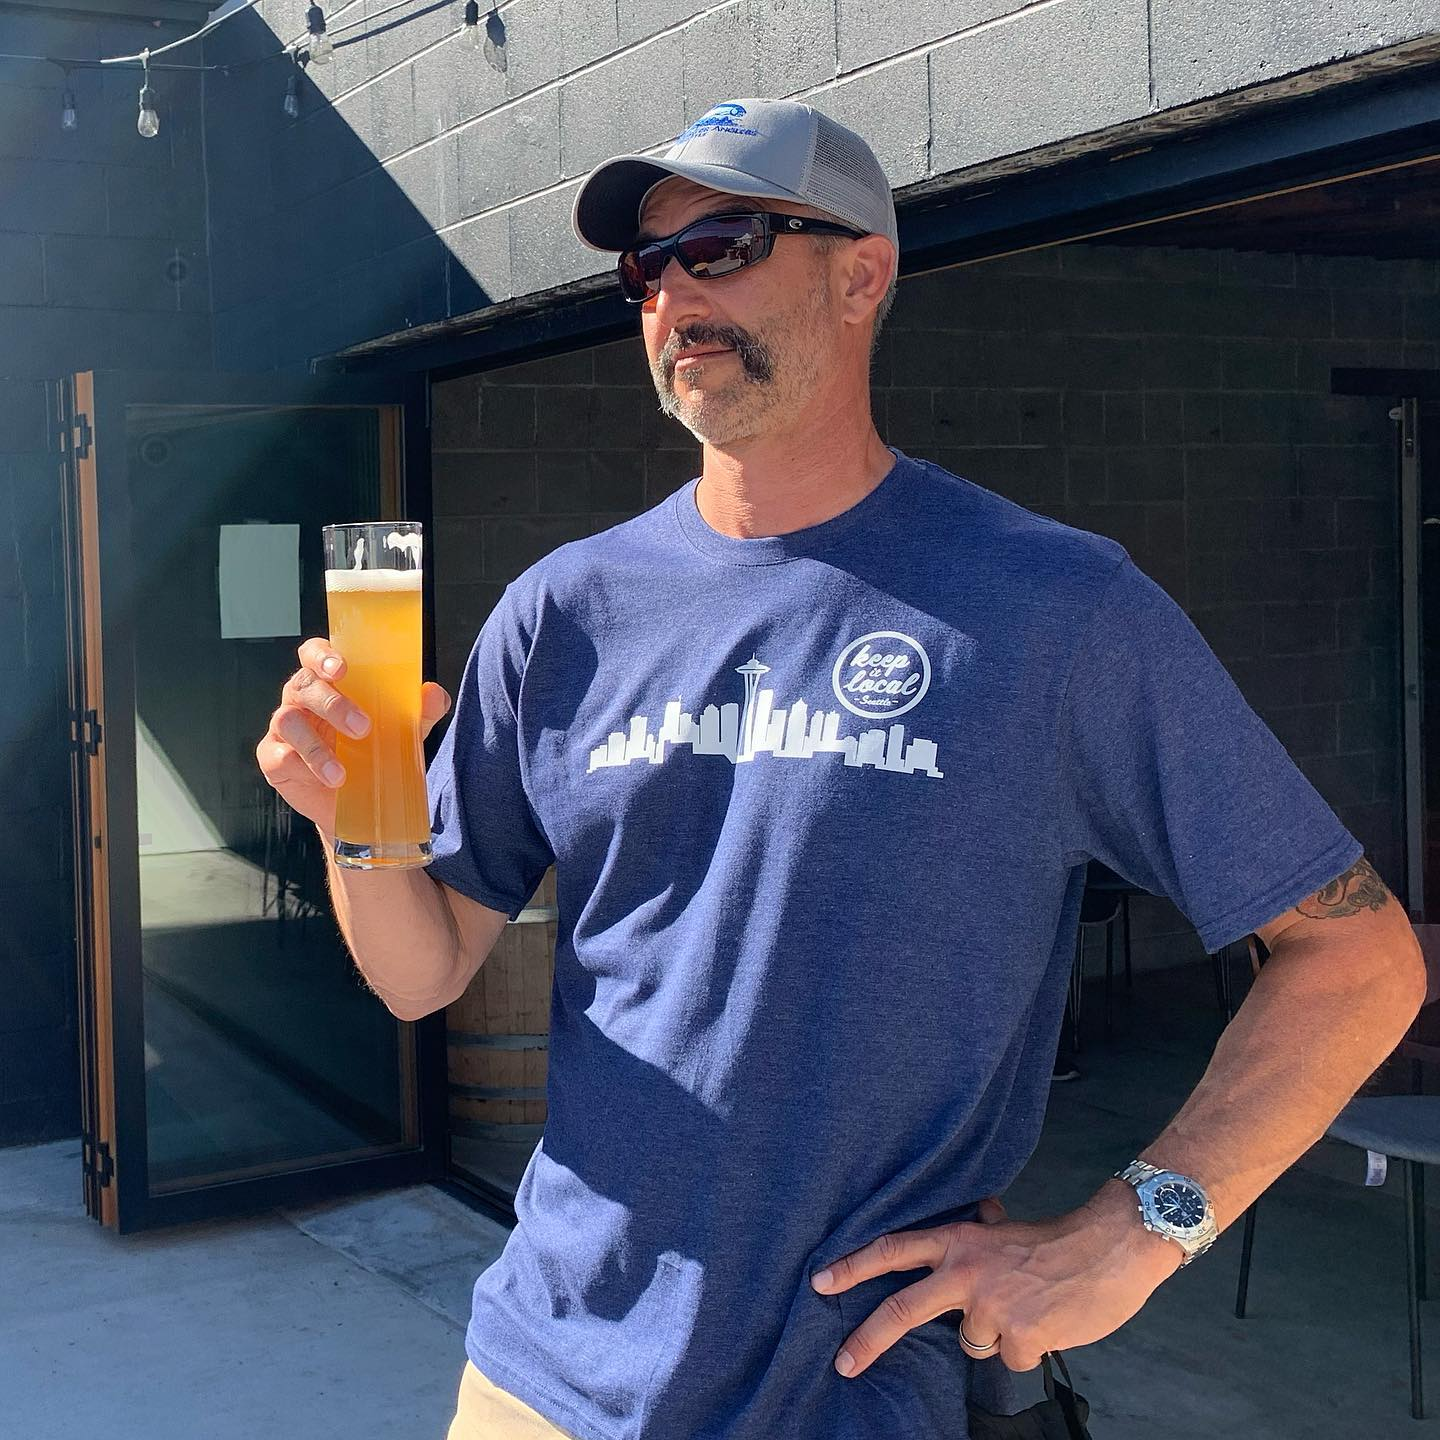 Stylish gentleman with a mustache, craft brew, and a Limited Edition Keep It Local Seattle T-Shirt